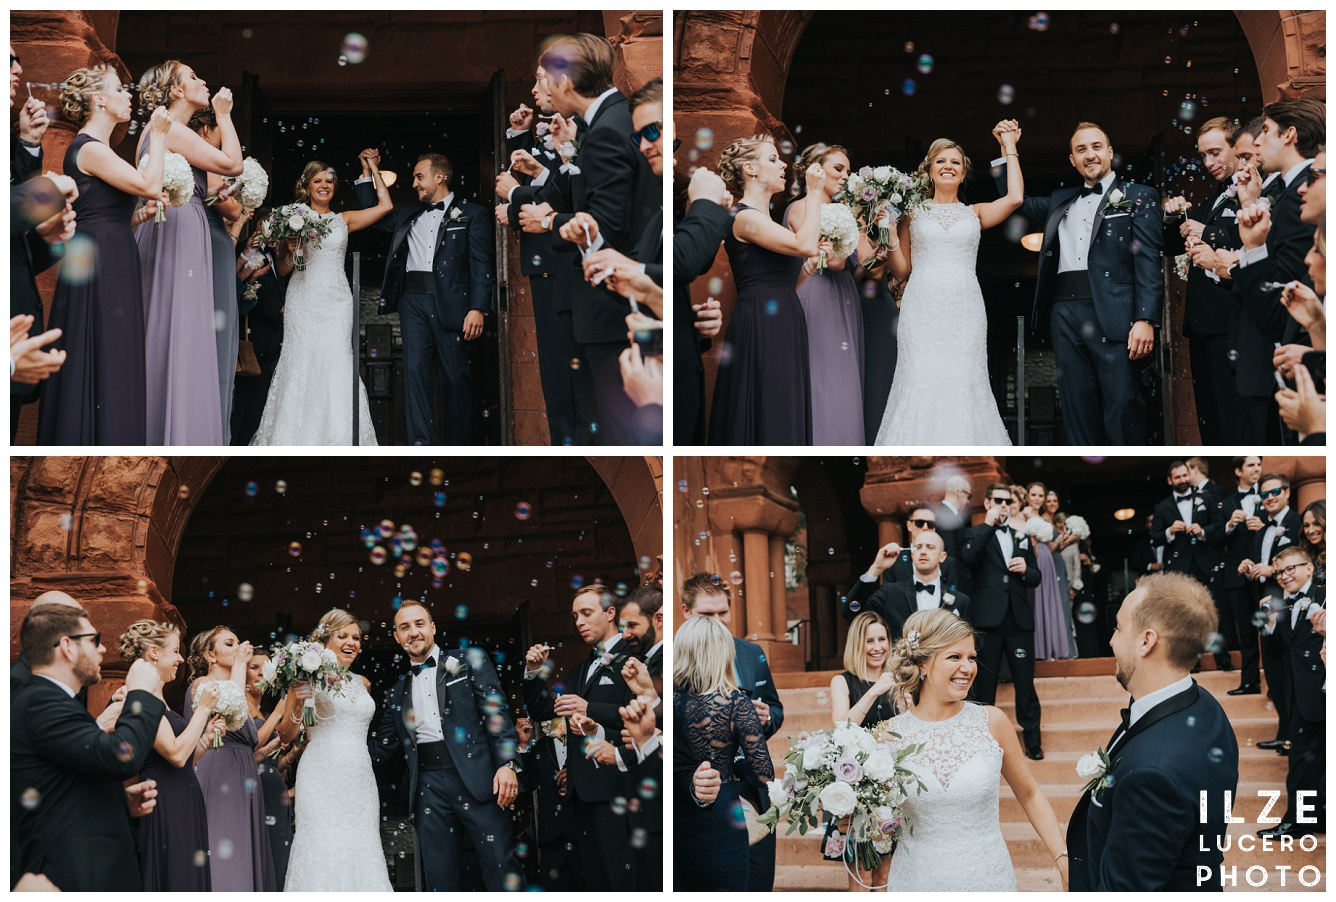 Bubble exit wedding inspiration